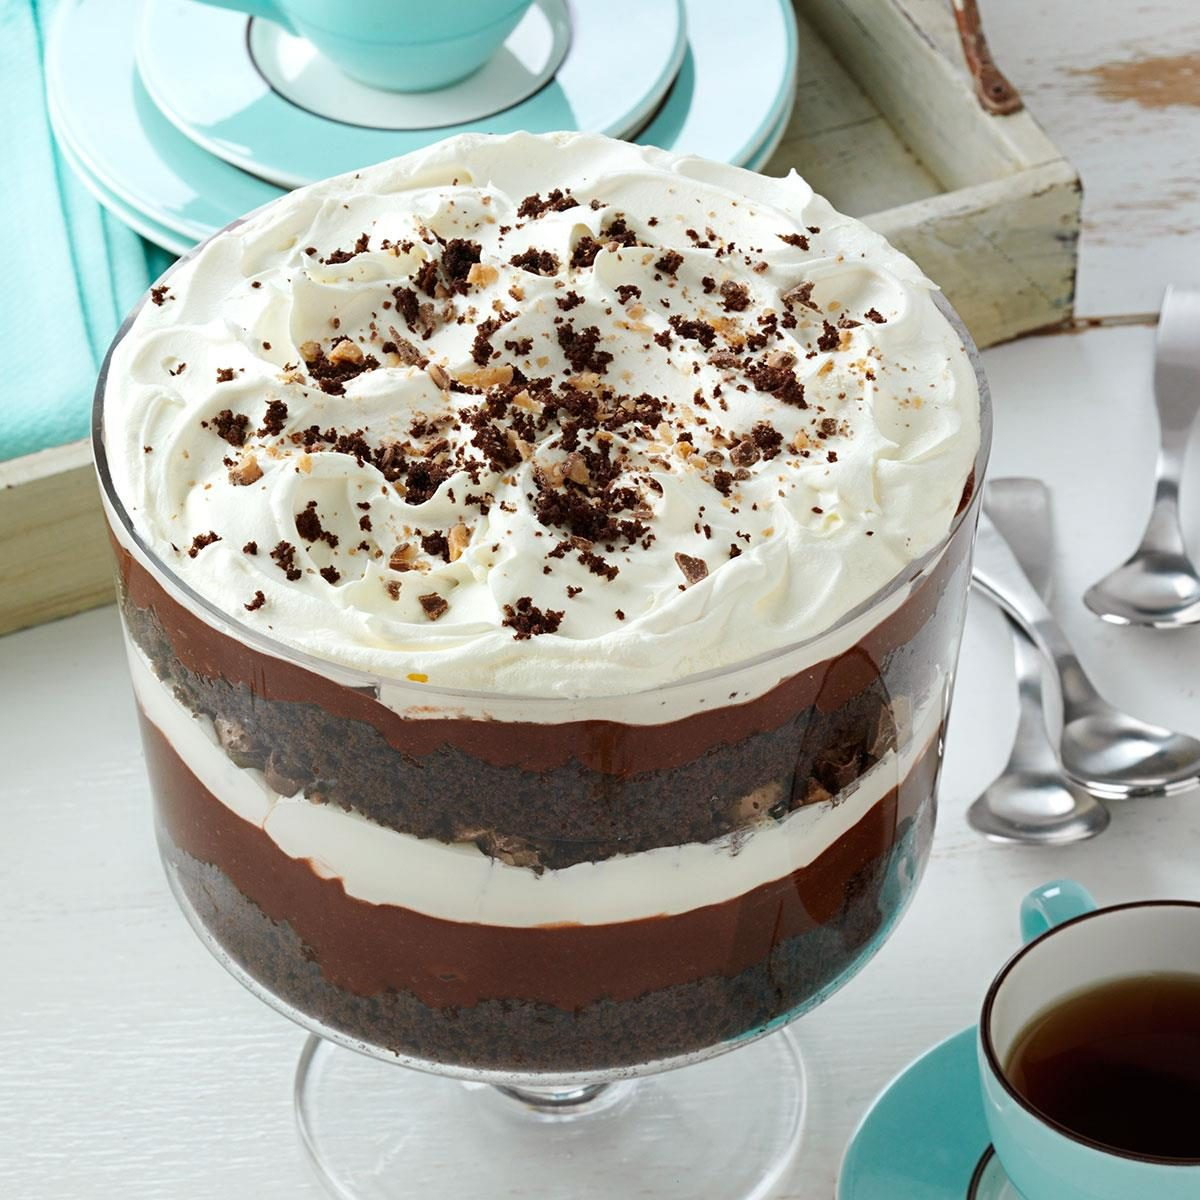 Chocolate Trifle Recipe | Taste of Home